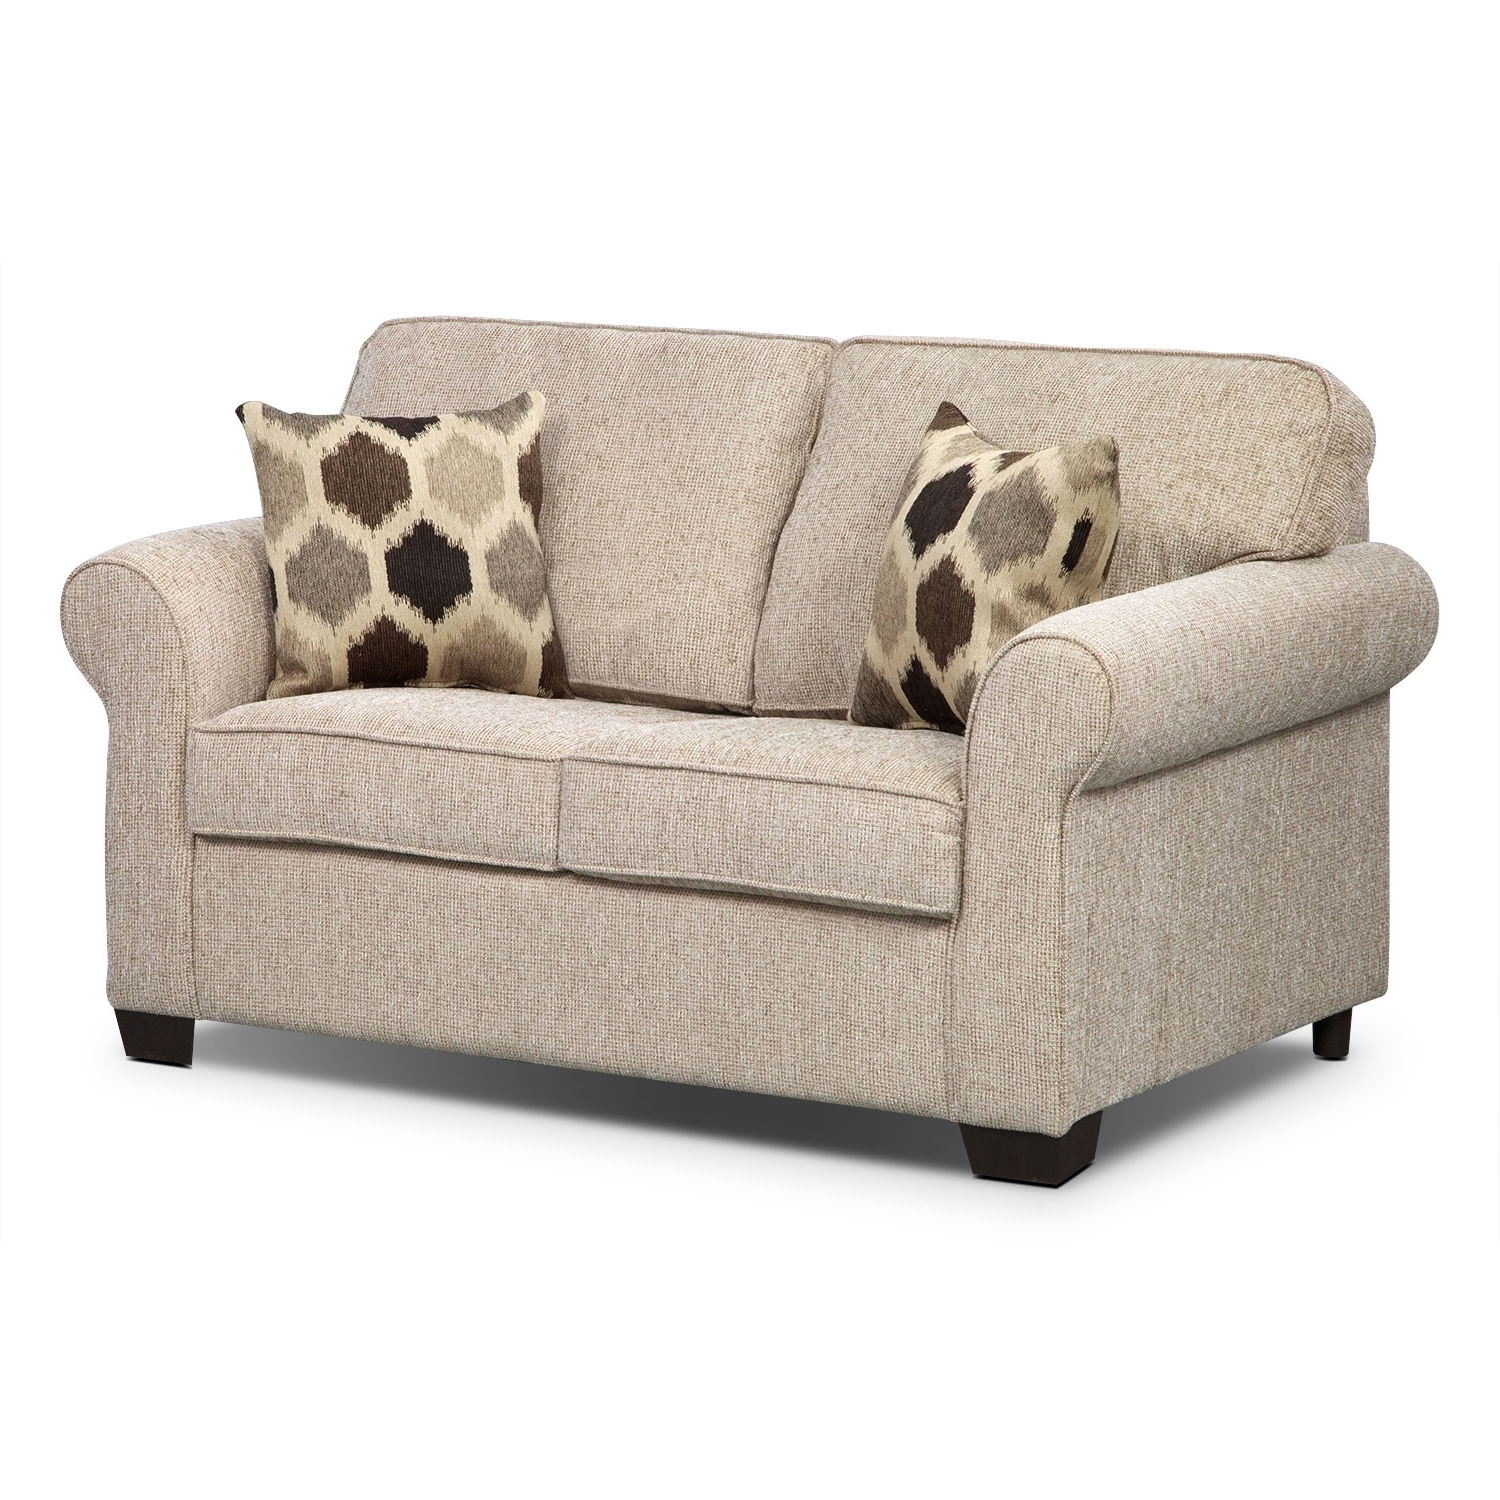 Famous Furniture: Comfortable Tempurpedic Sofa Bed For Cozy Living Room For City Sofa Beds (View 11 of 20)